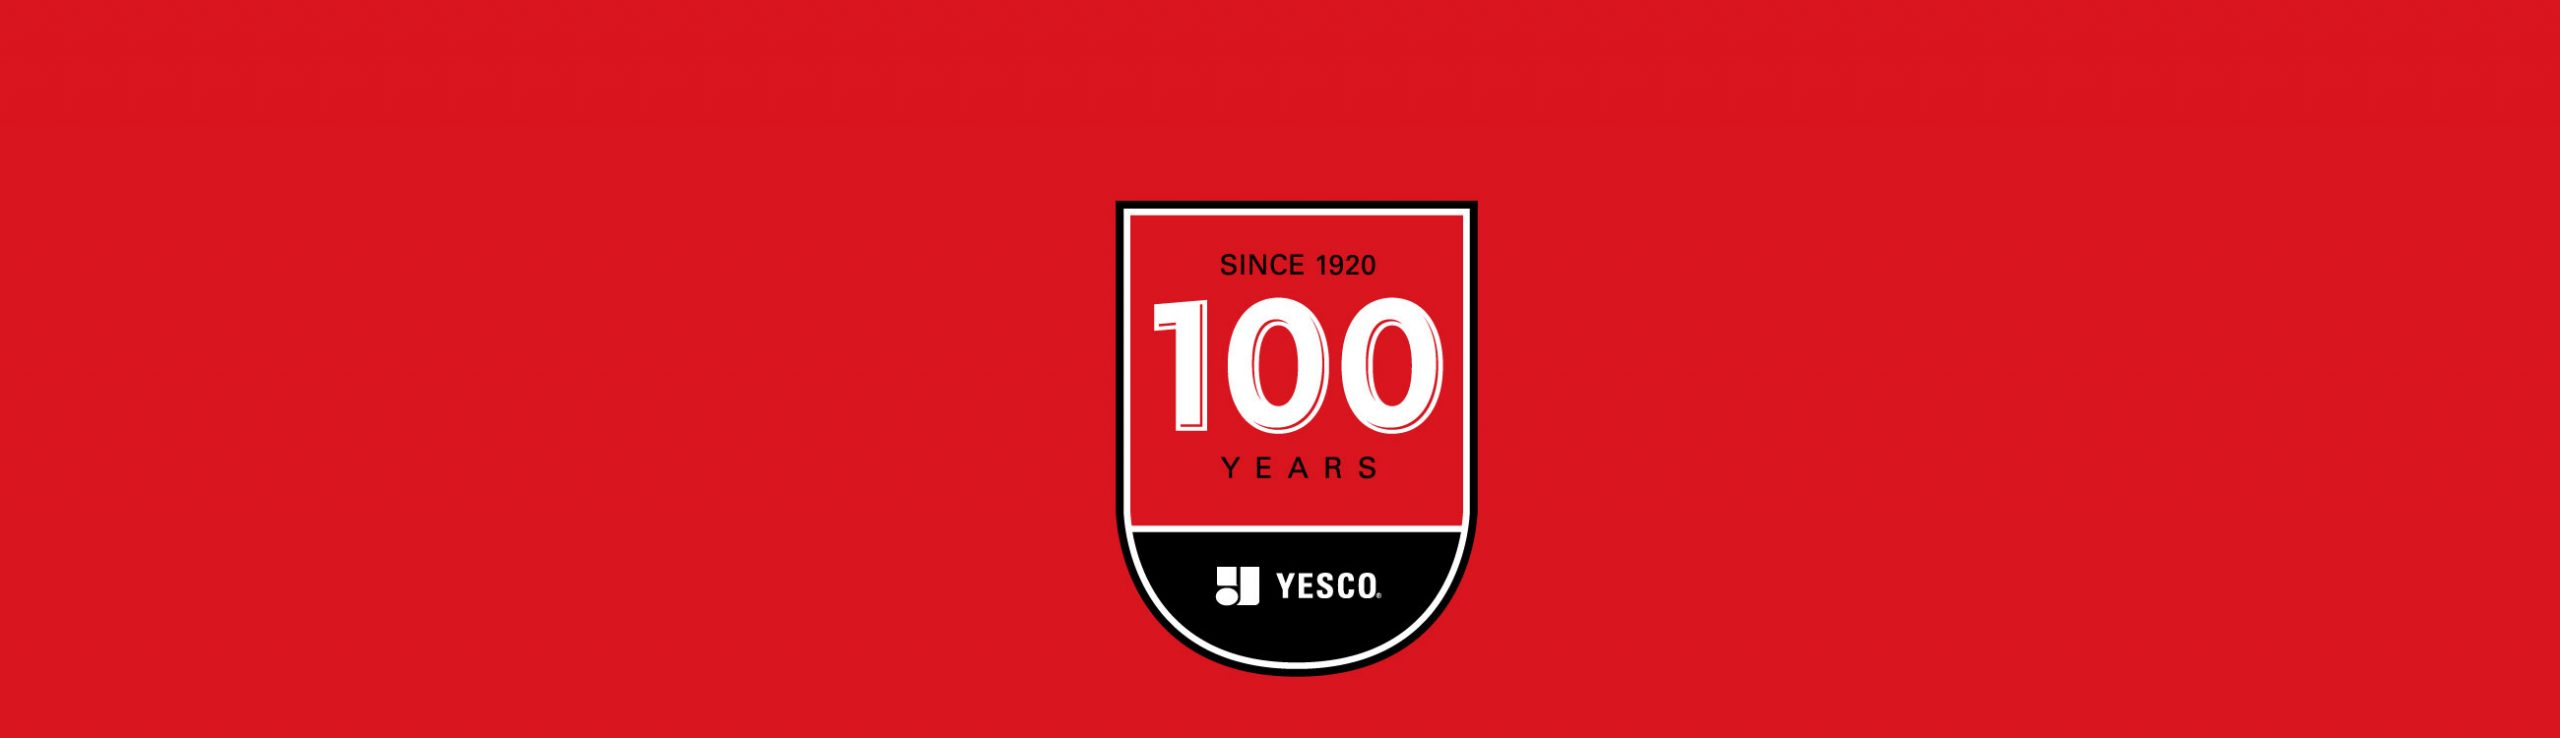 YESCO_100-Years-Banner_2600x750